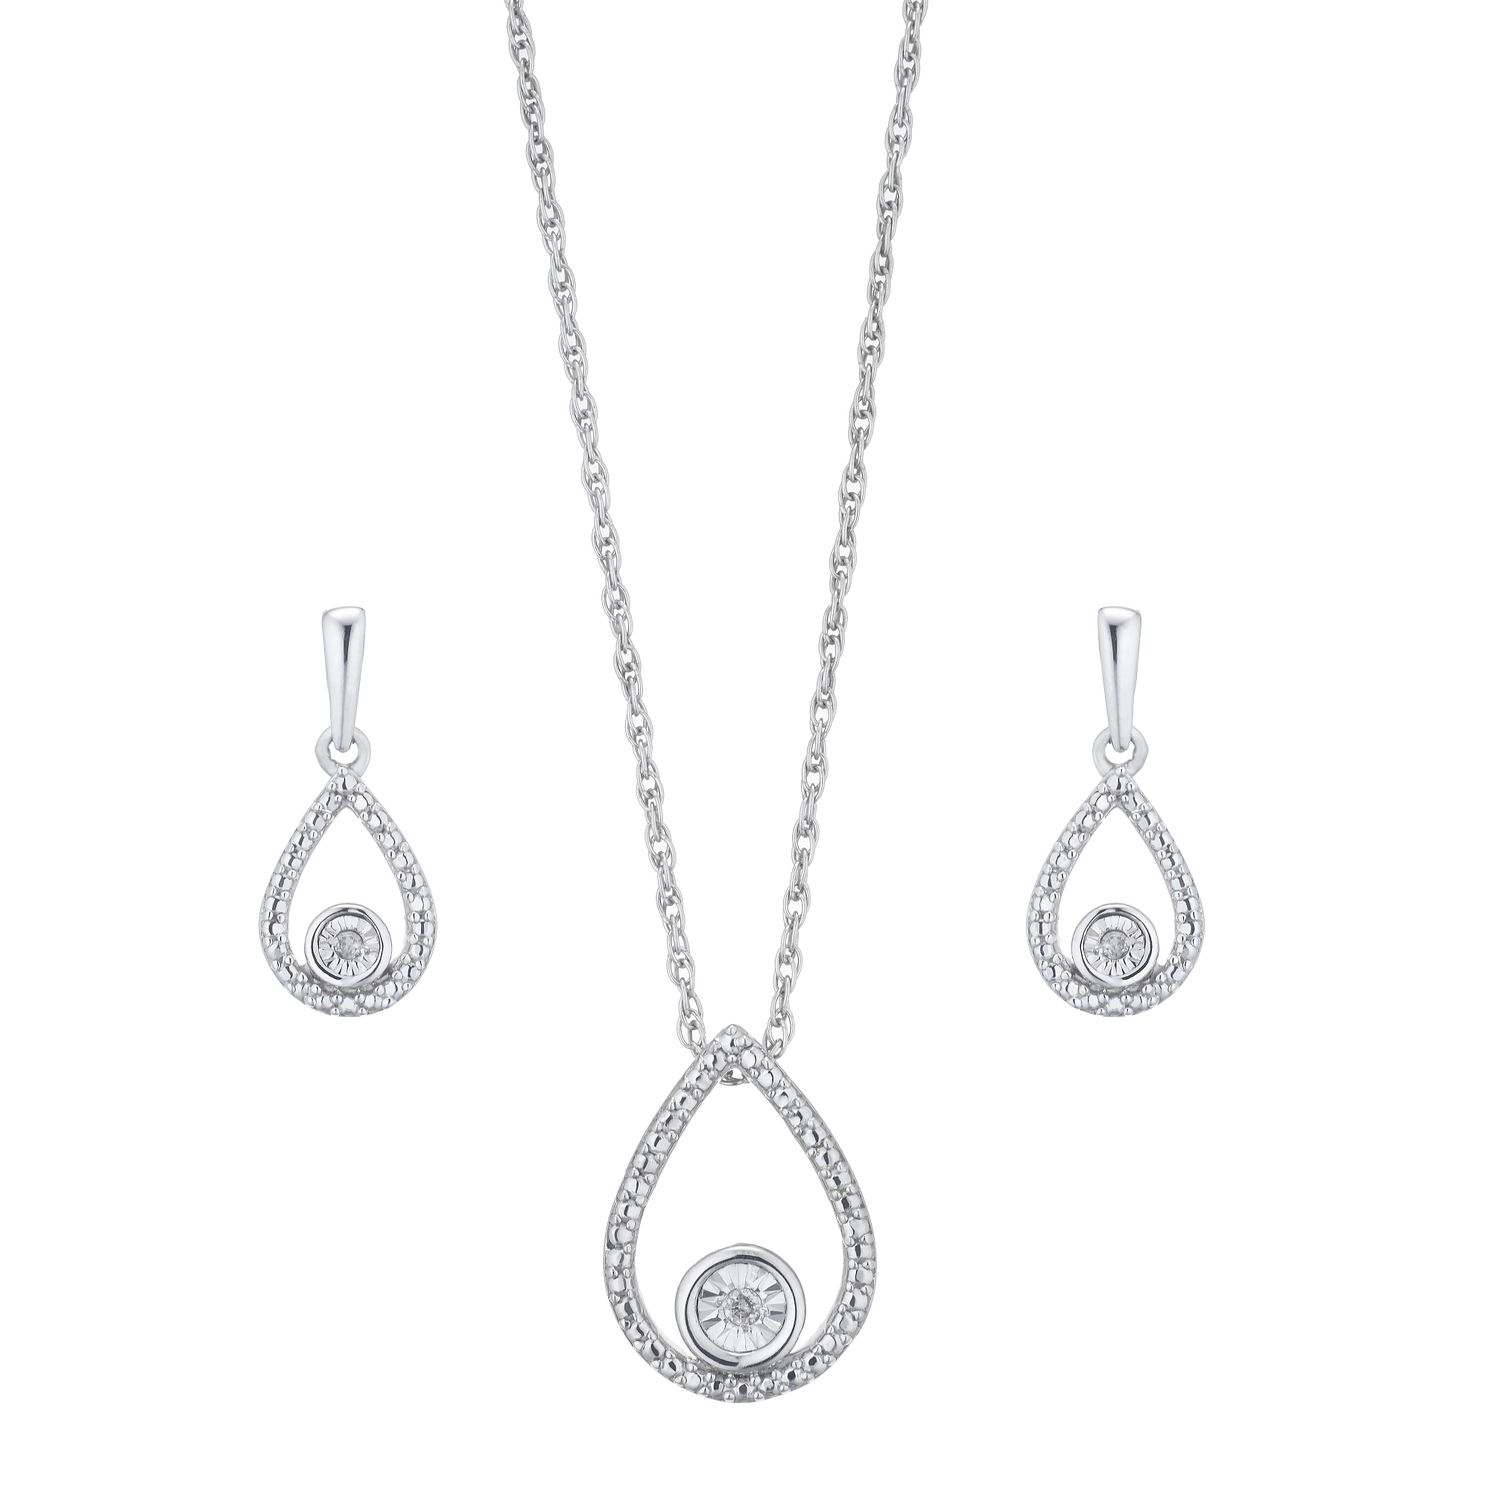 Silver Diamond Pear Necklace & Stud Earrings Gift Set - Product number 2147092